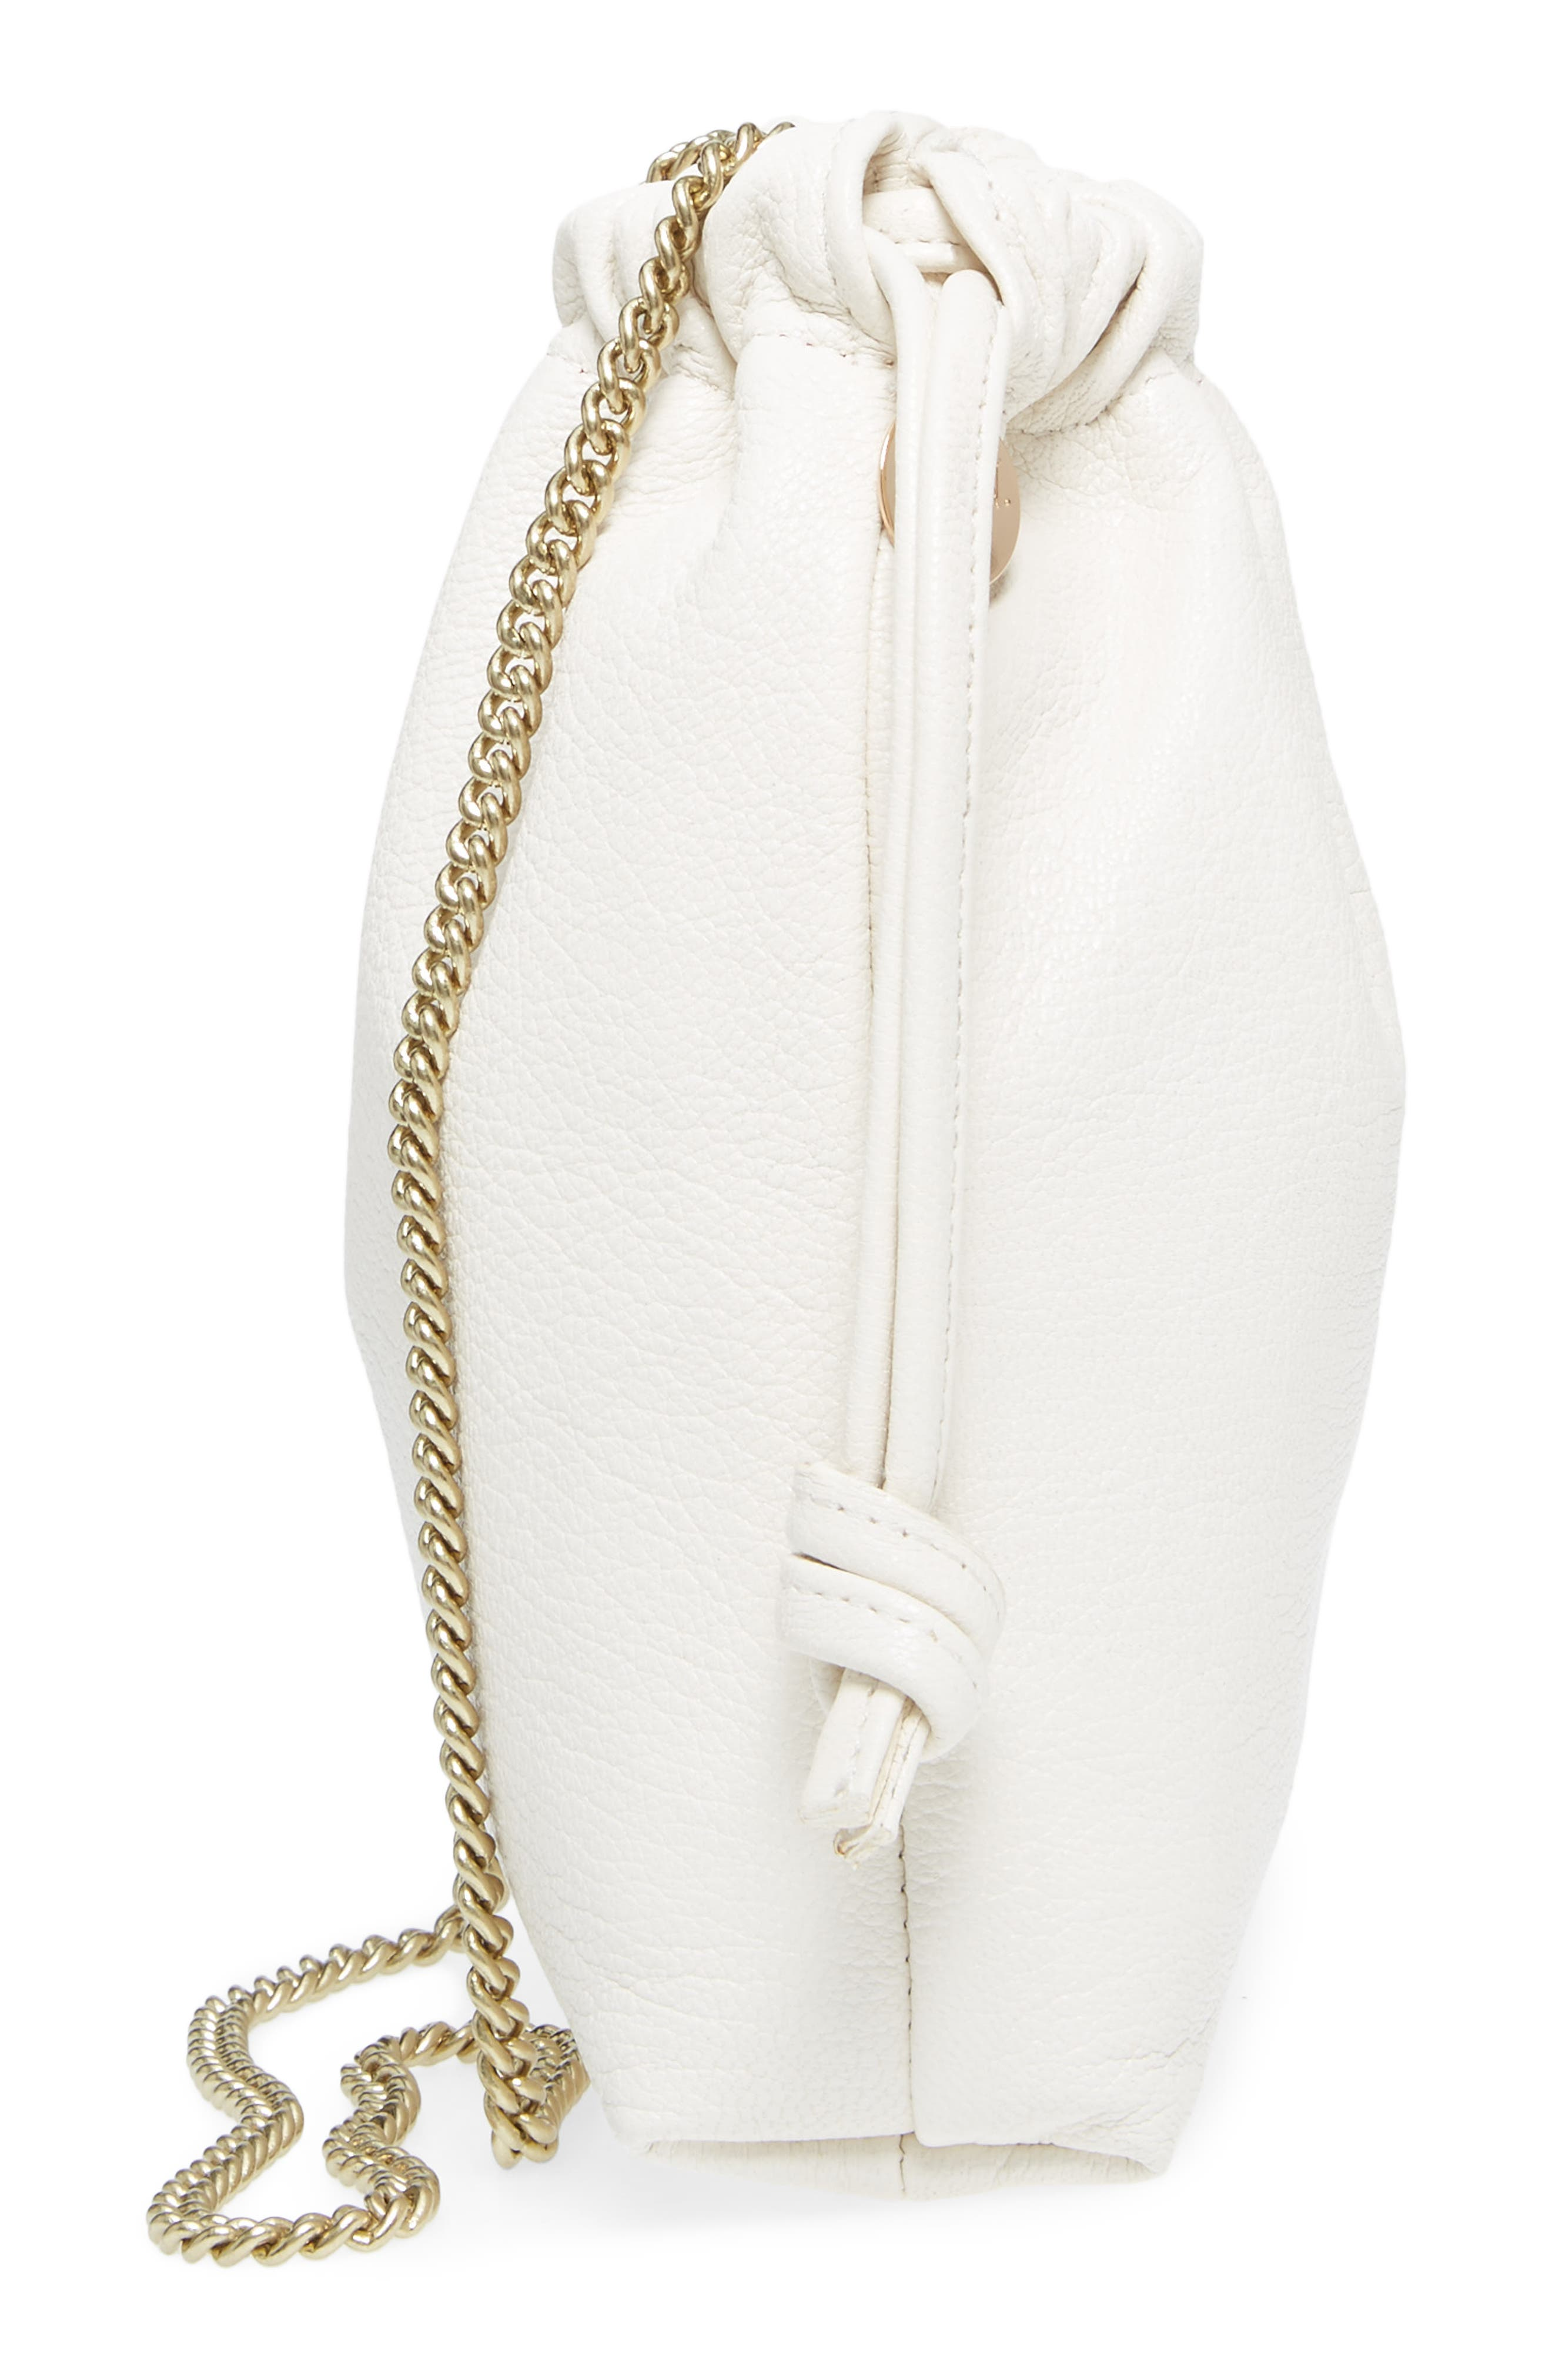 Leather Drawstring Wristlet Pouch,                             Alternate thumbnail 5, color,                             Cream Goat